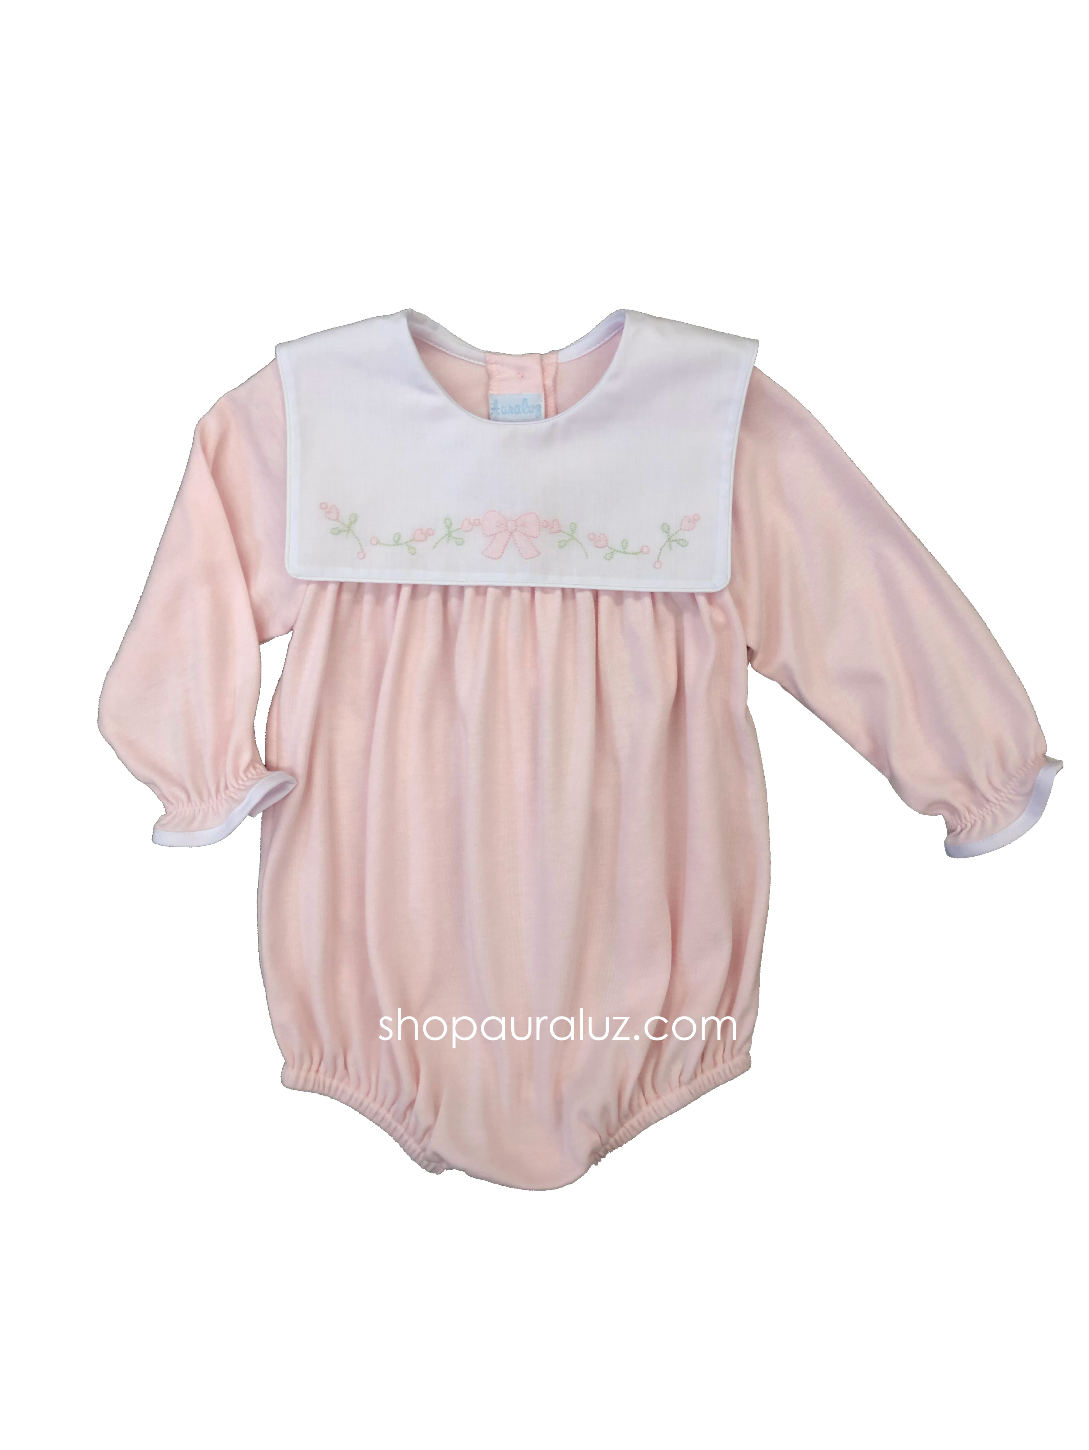 Auraluz Knit Bubble l/s...Pink with sq.collar and embroidered bow